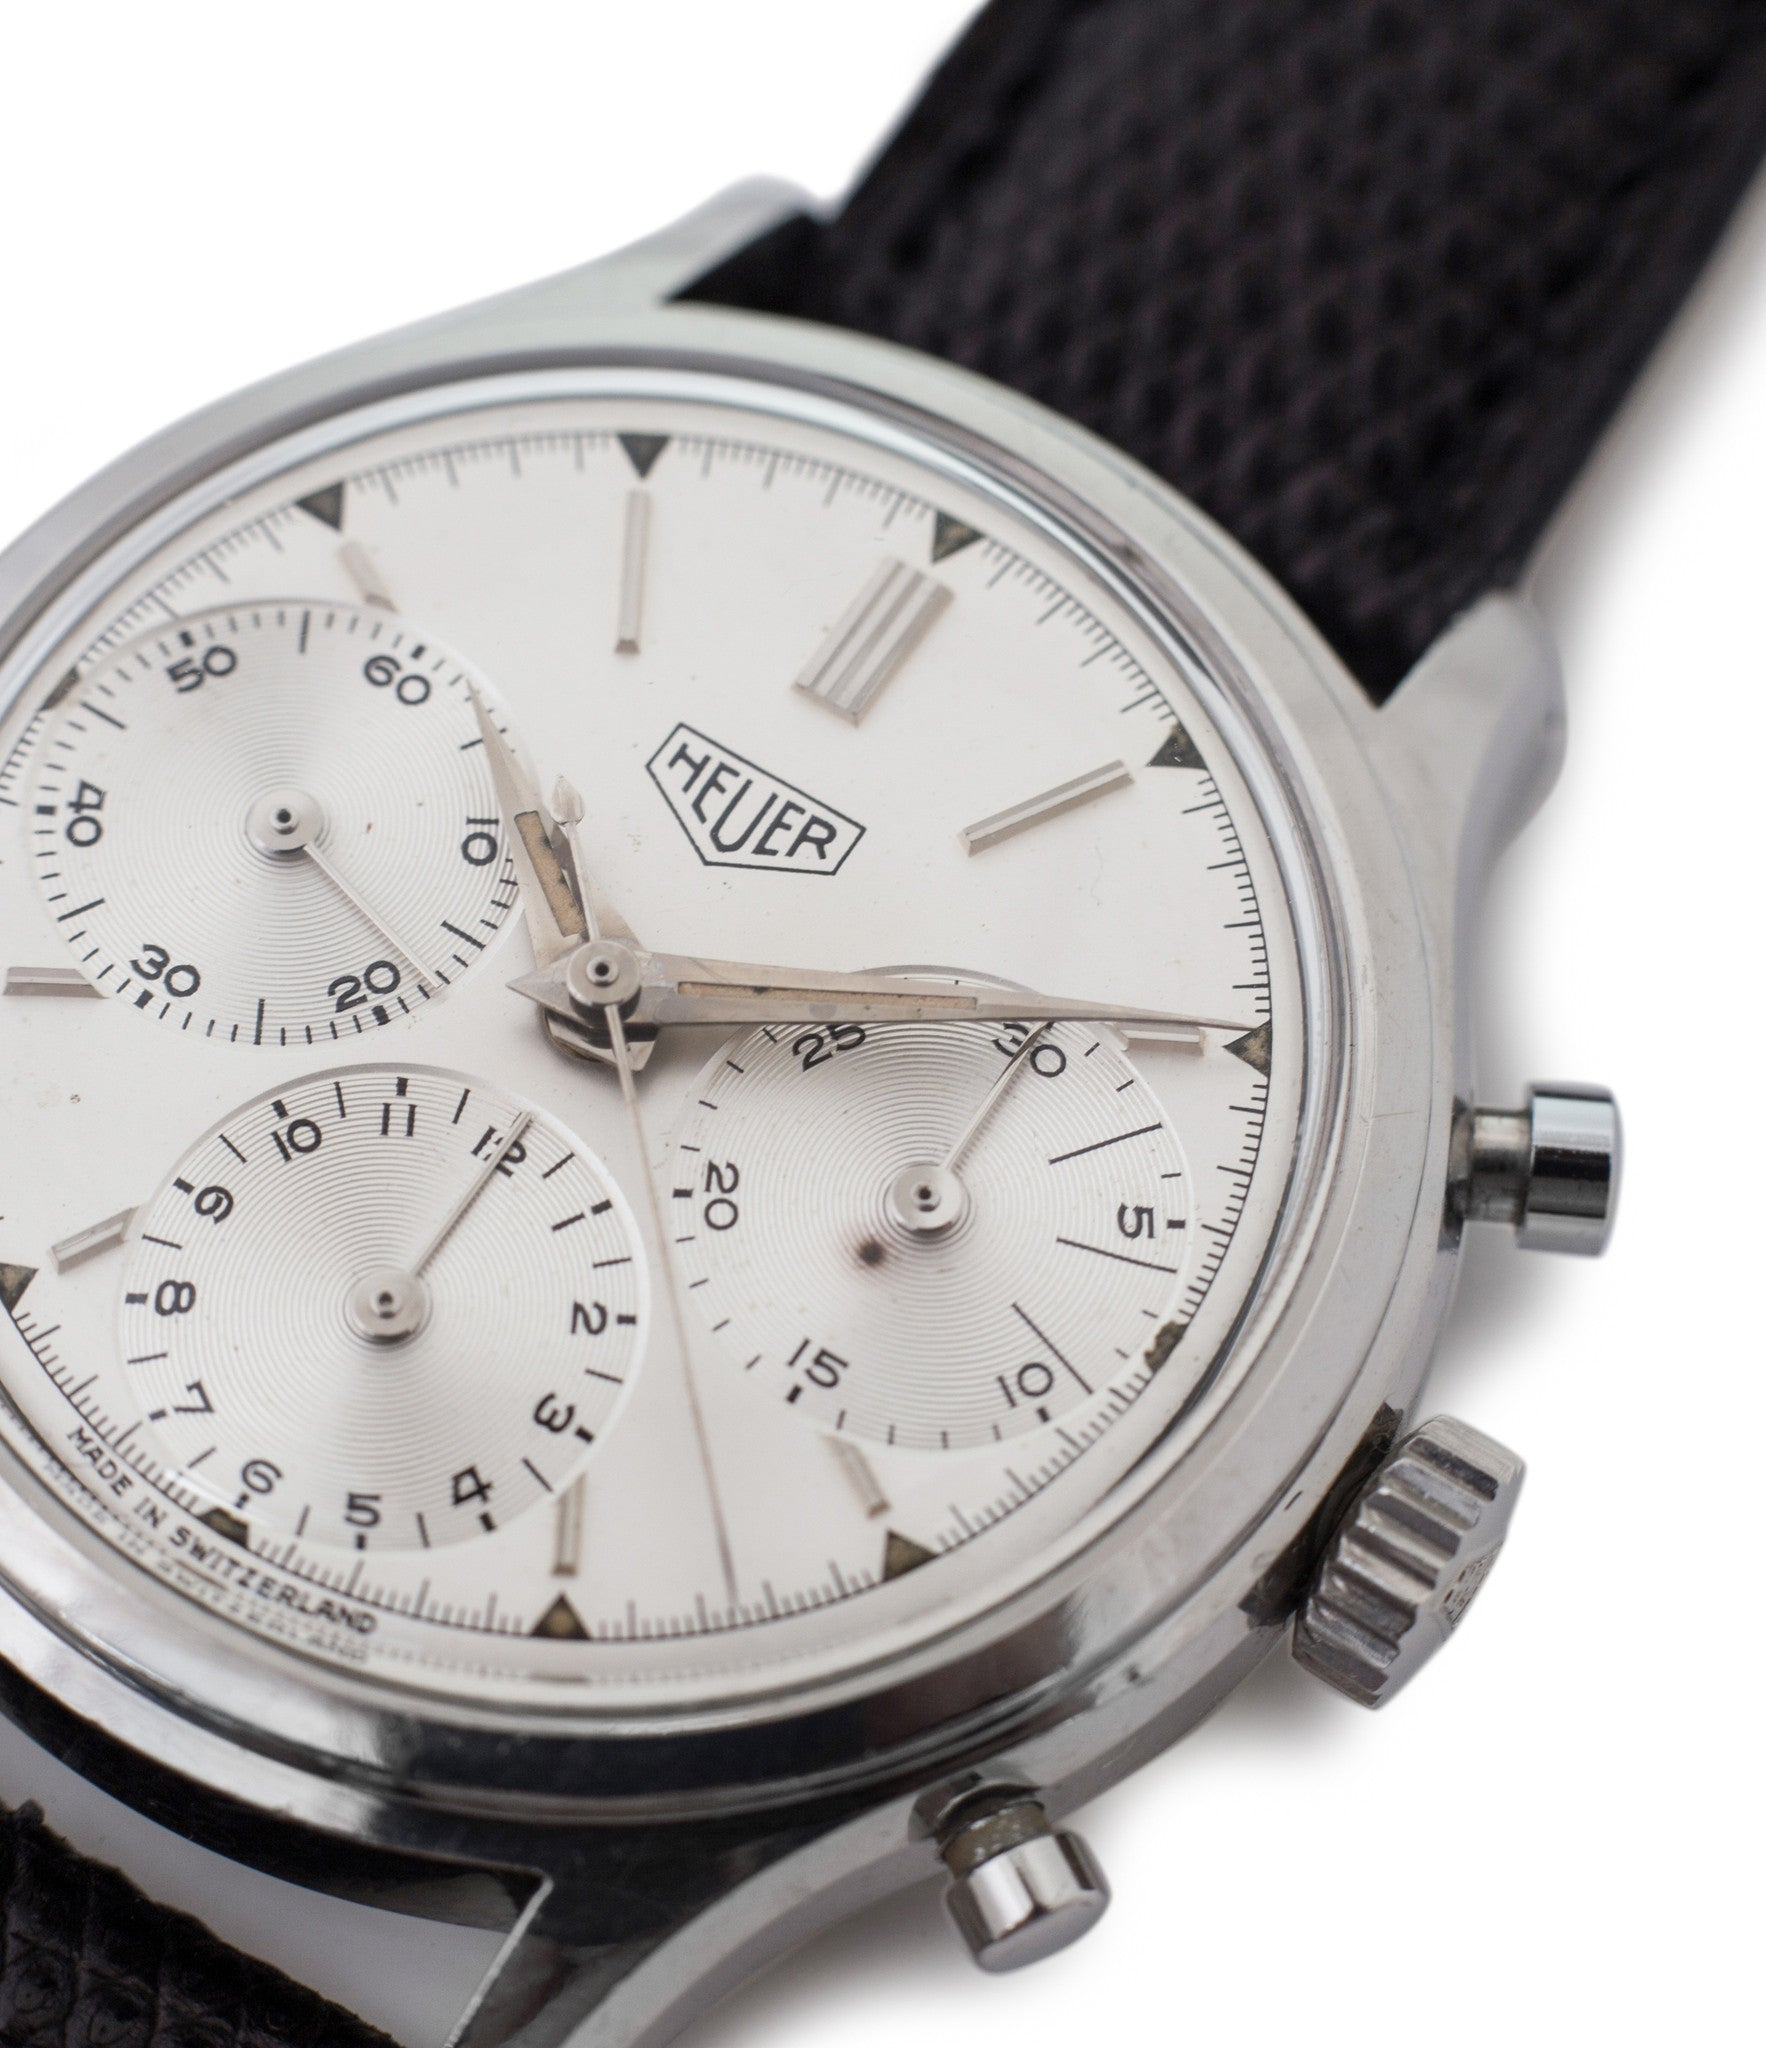 buy Heuer Pre-Carrera 2444 steel vintage Valjoux 72 chronograph watch silver dial for sale online at WATCH XCHANGE London